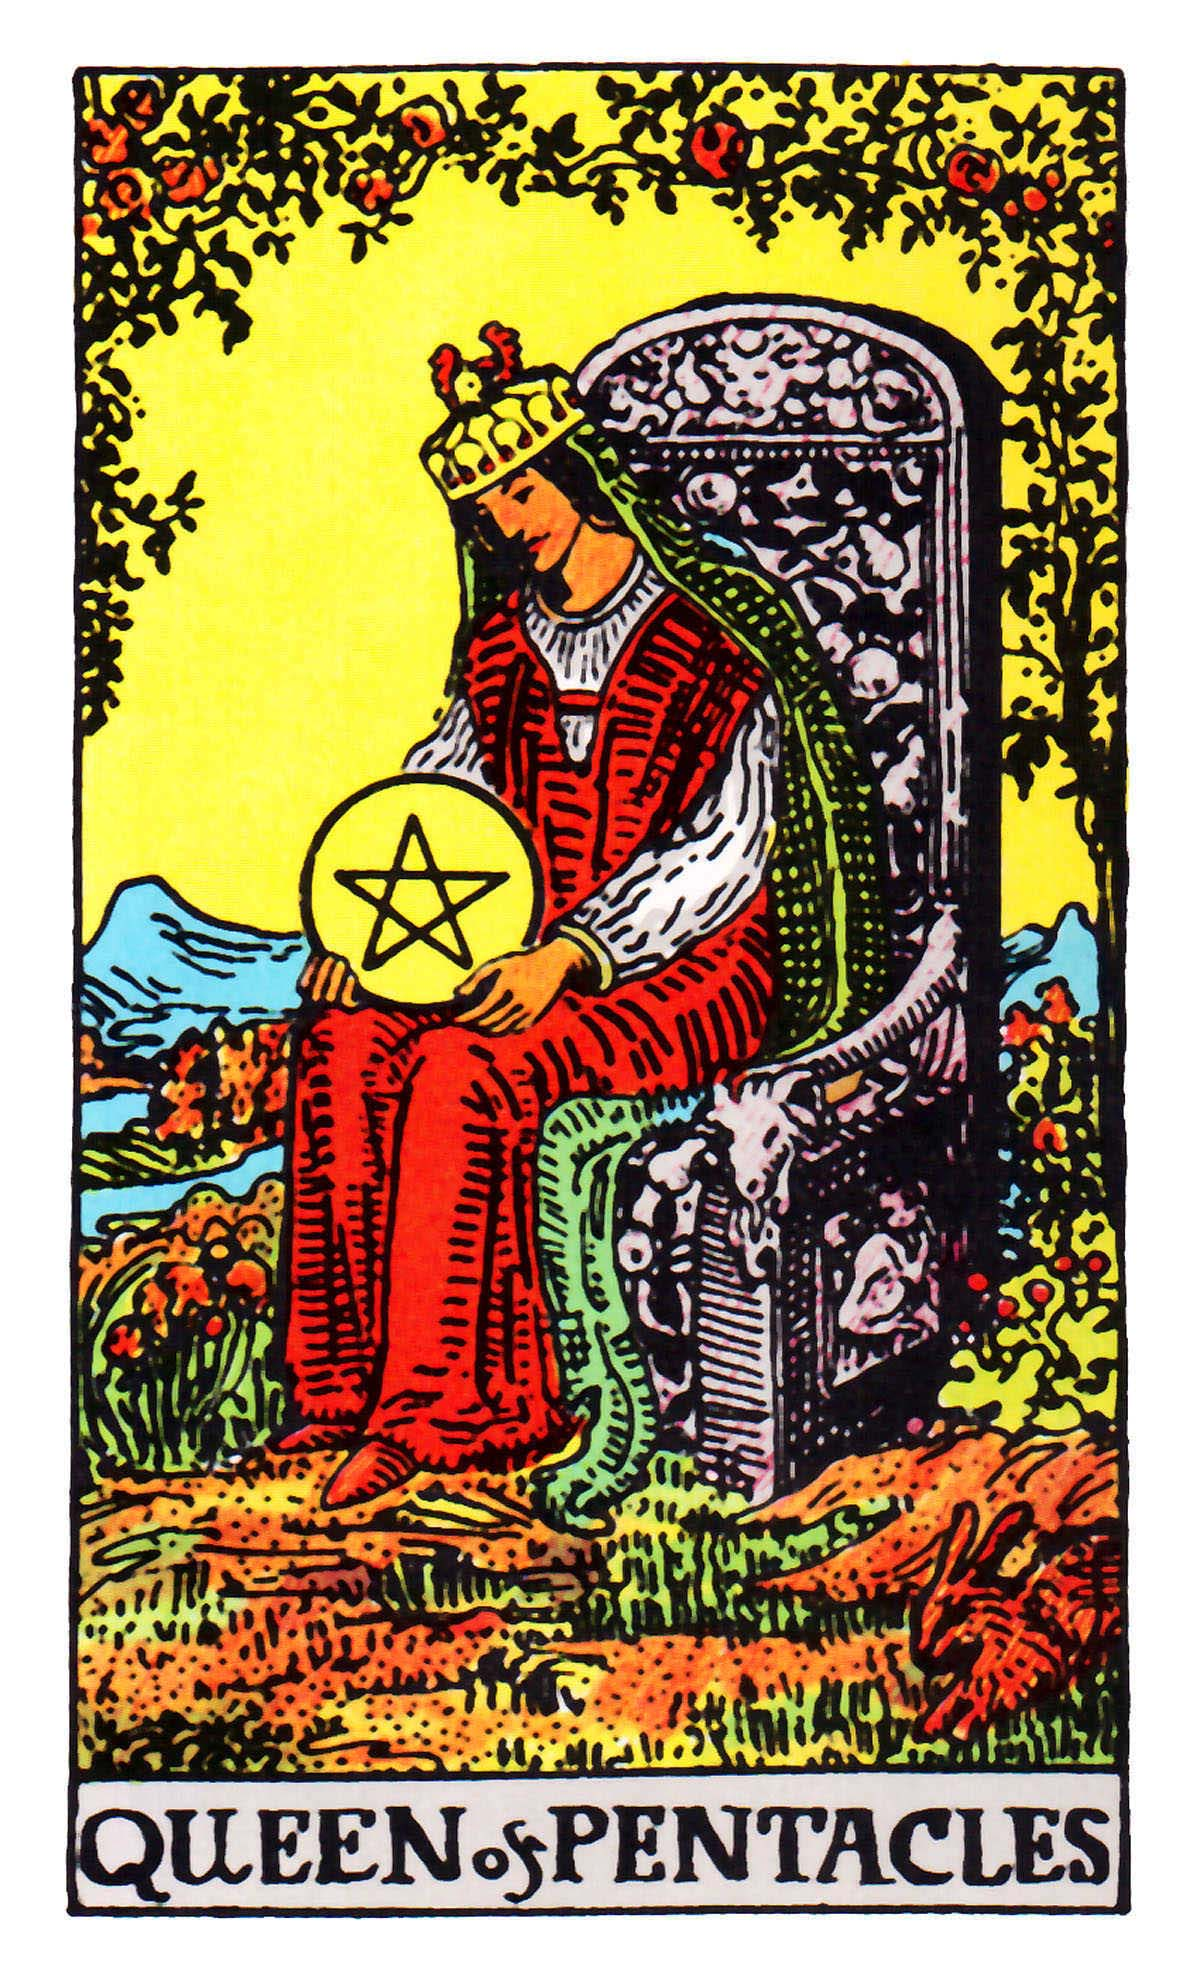 Tarot Cards And Important Life Events: The Pentacles Suit Tarot Cards Meanings In Readings